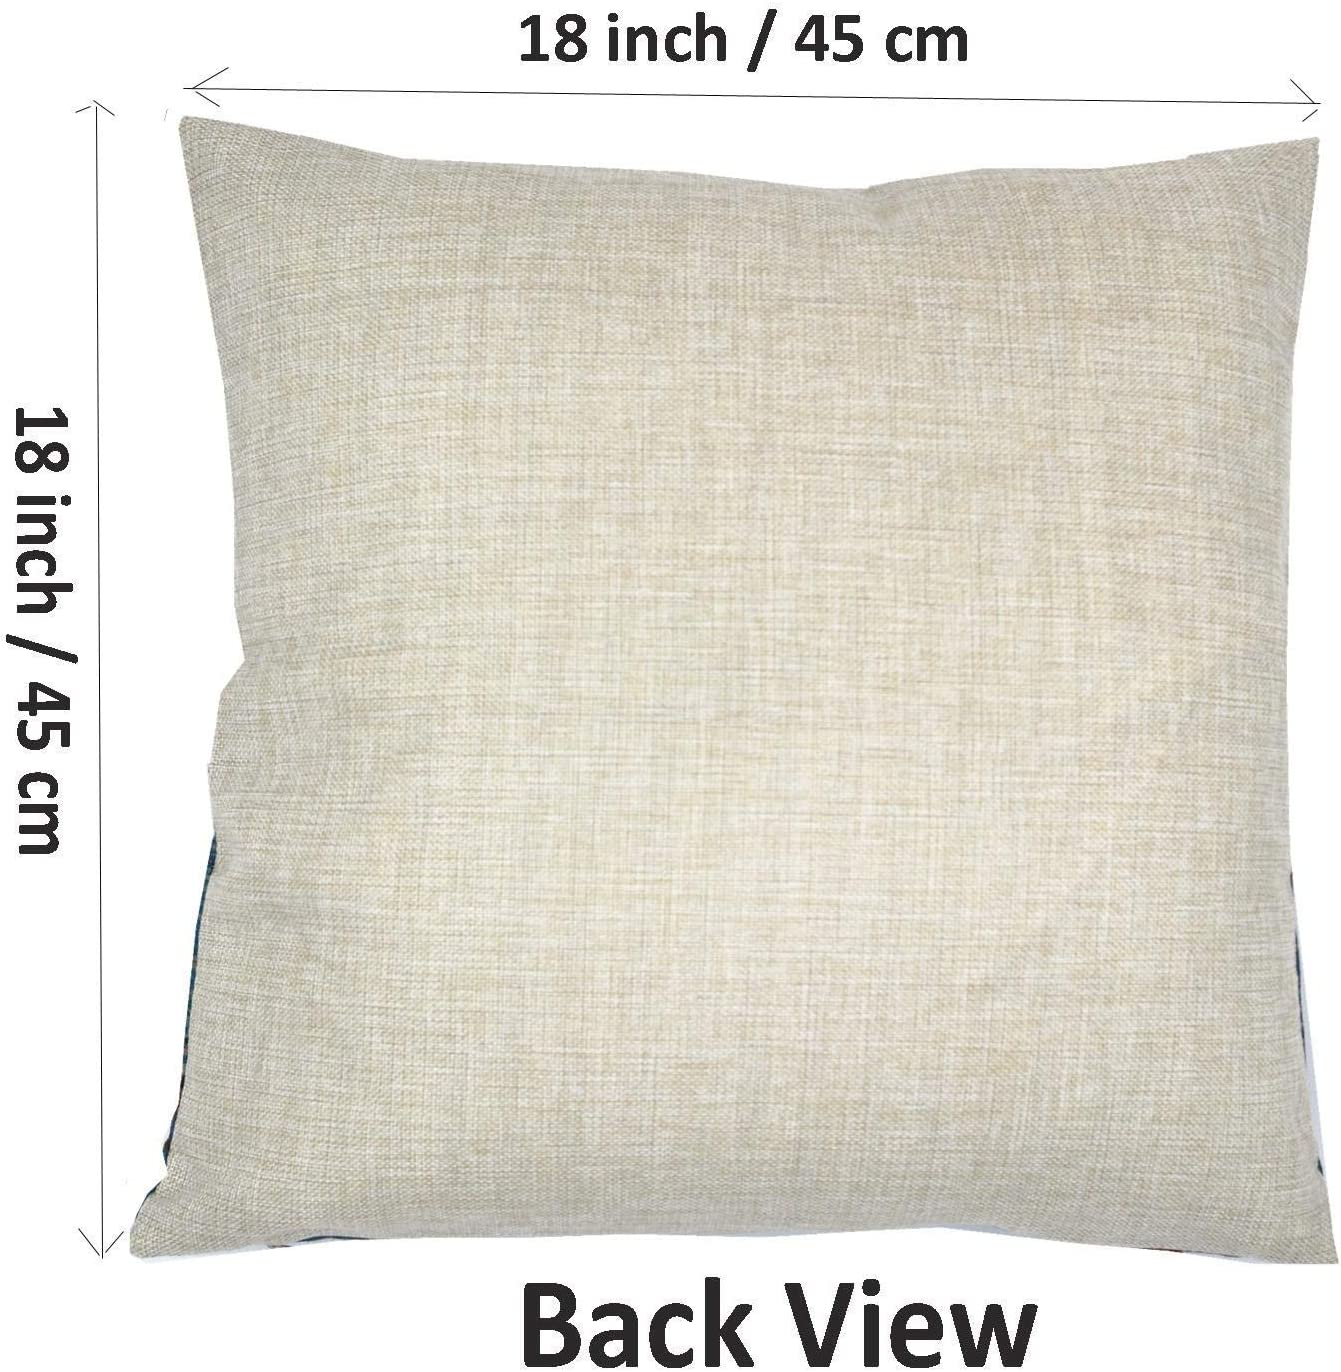 MOZEEDA Set of 4 Christmas Pillow Covers Festival Decorations Pillow Covers Decoration Sofa Linen Pillow Case Home Decor Gifts 4PC 18 x 18 in